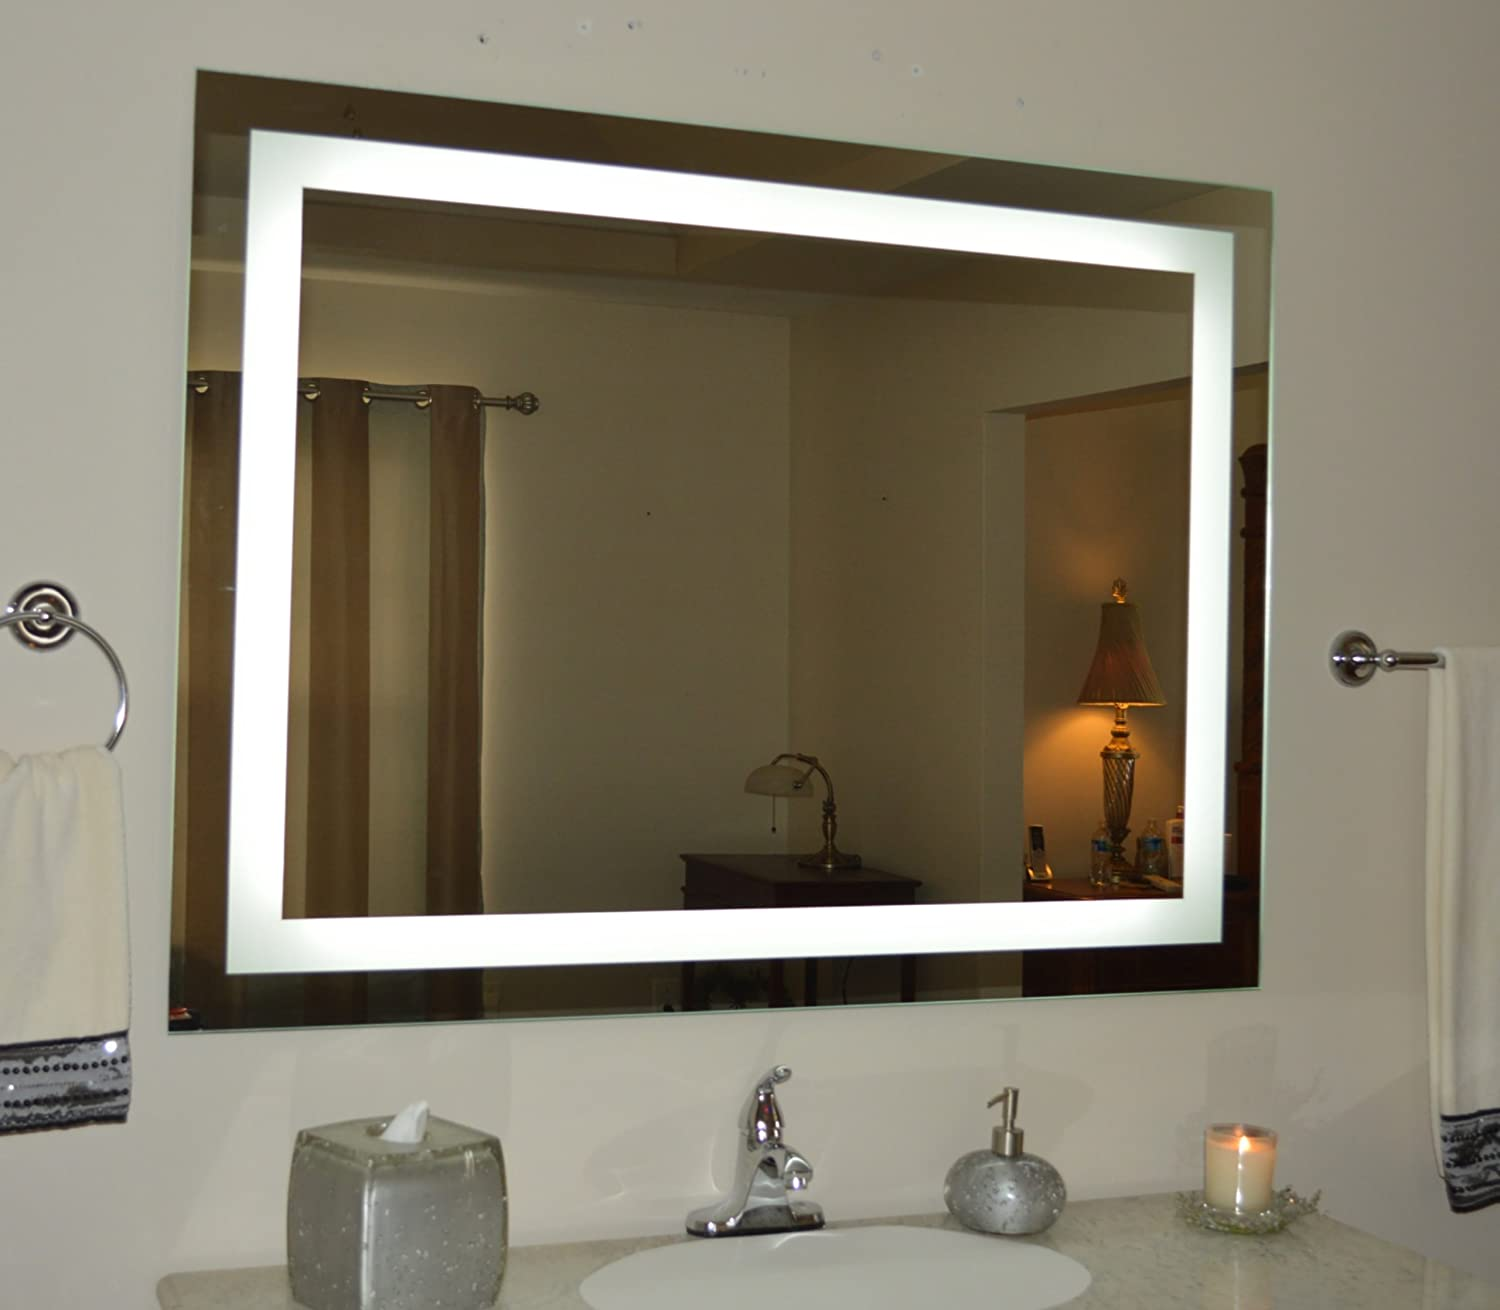 bathroom mirror with lighting. Amazon.com: Wall Mounted Lighted Vanity Mirror LED MAM84836 Commercial Grade 48: Home \u0026 Kitchen Bathroom With Lighting I